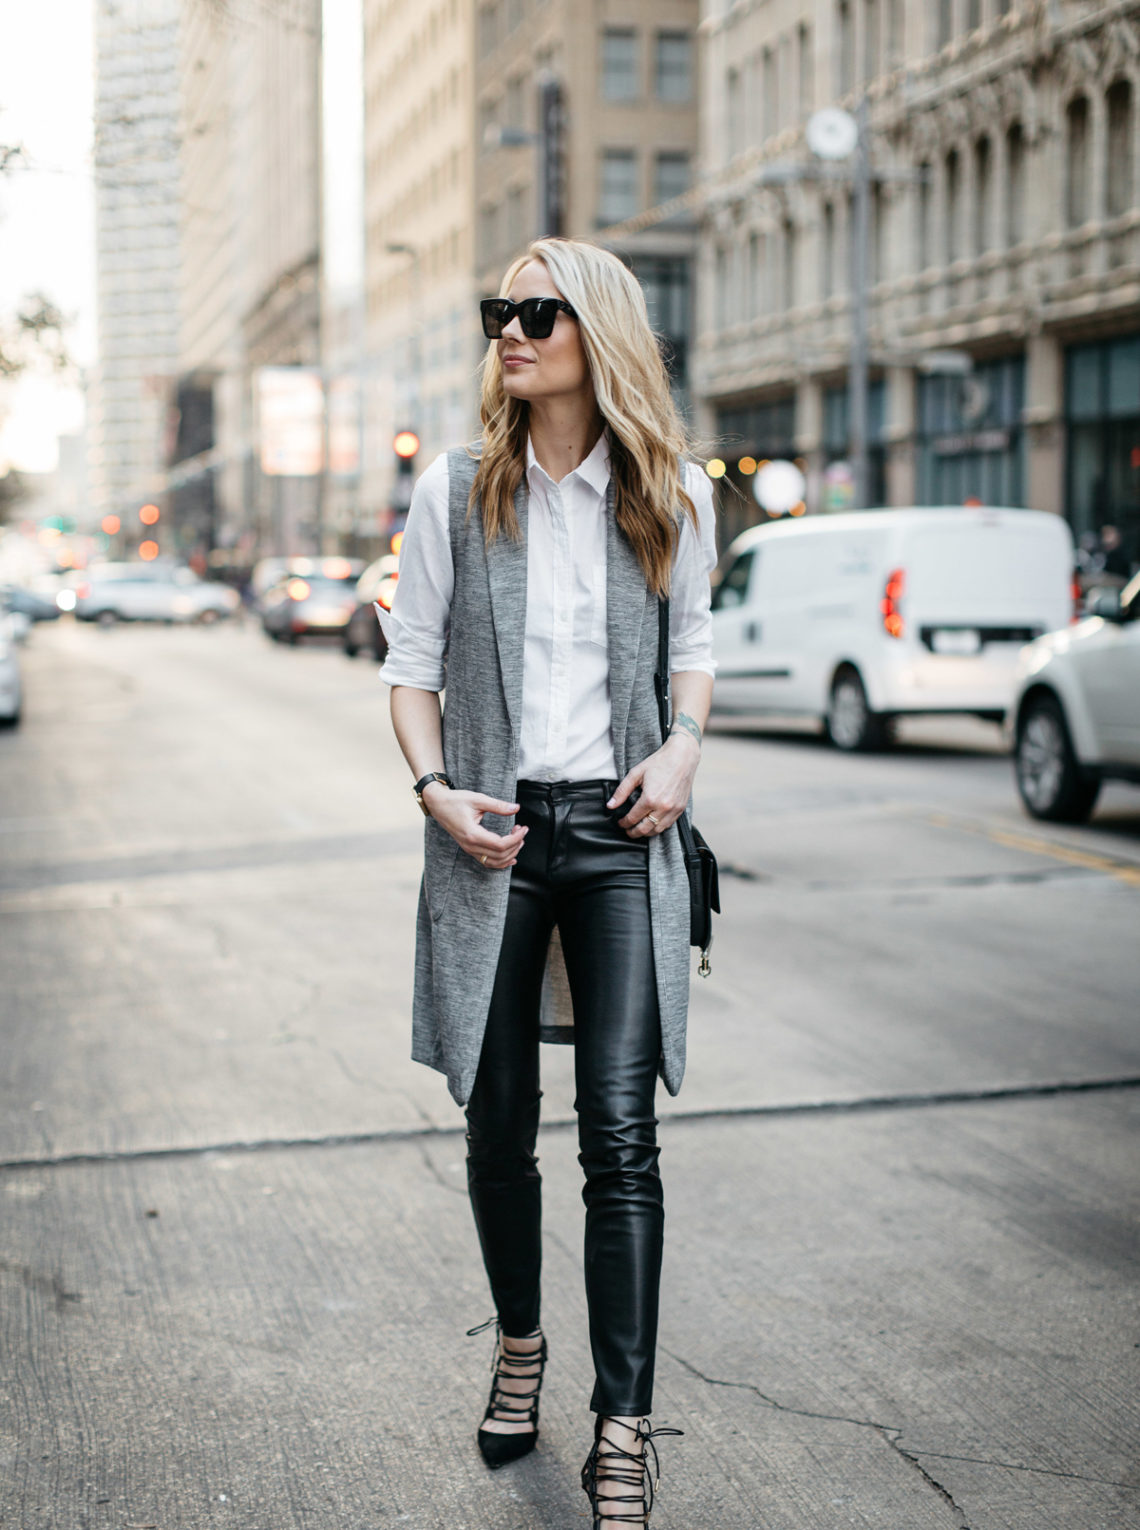 Fall Outfit, Winter Outfit, White Button-Down Shirt, Long Grey Vest, Faux Leather Black Pants, Chloe Faye Handbag, Aquazzura Amazon Pumps